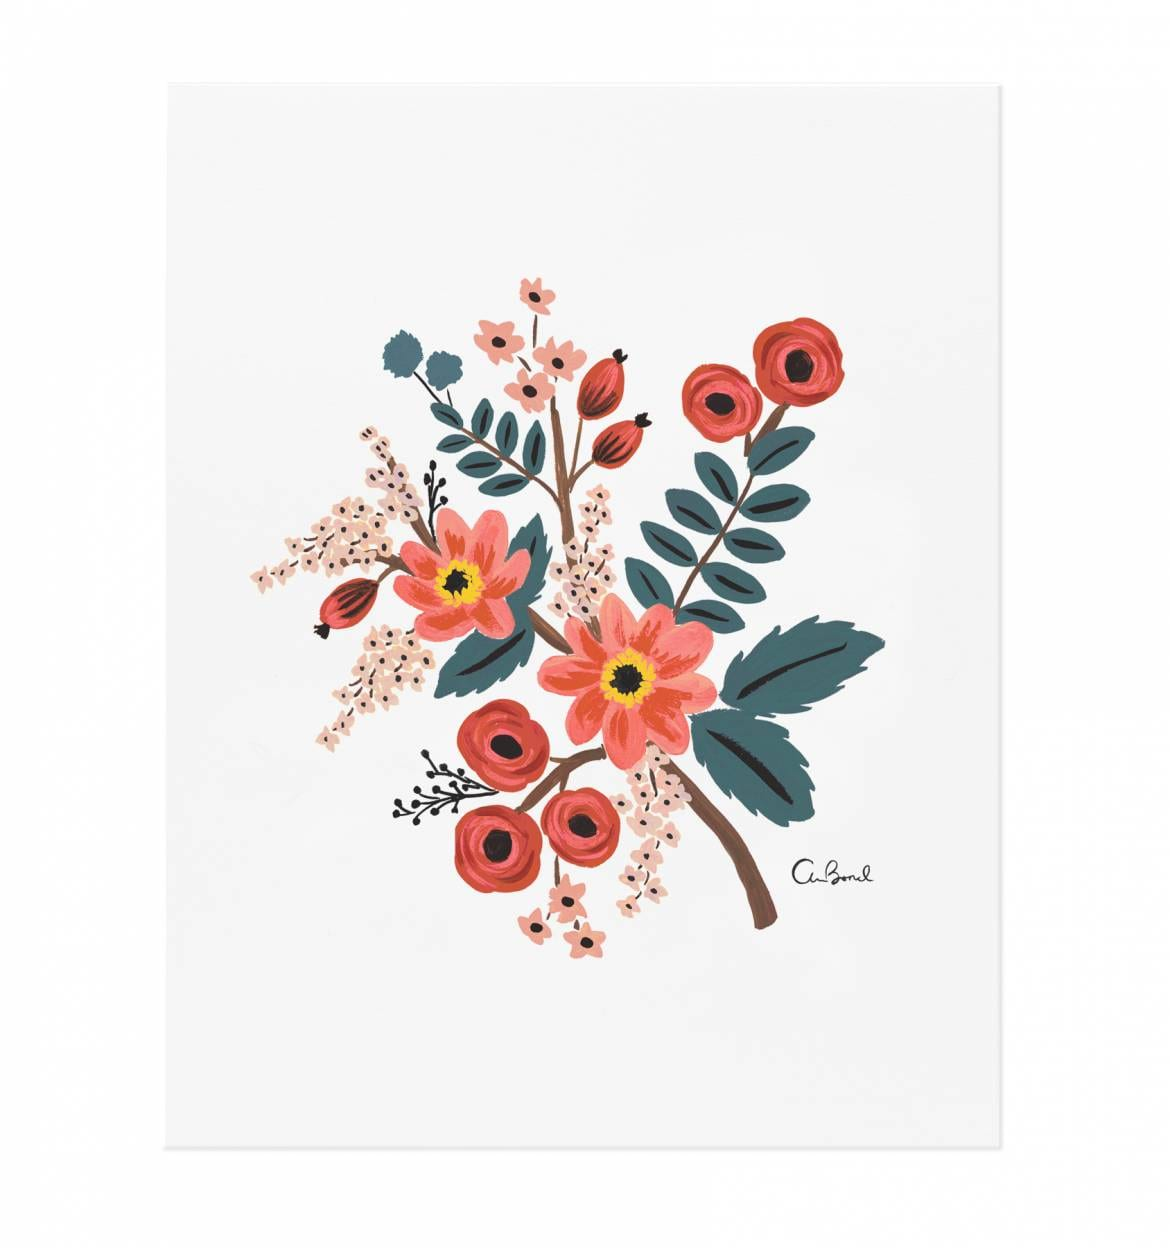 coral-botanical-illustrated-art-print-01_1